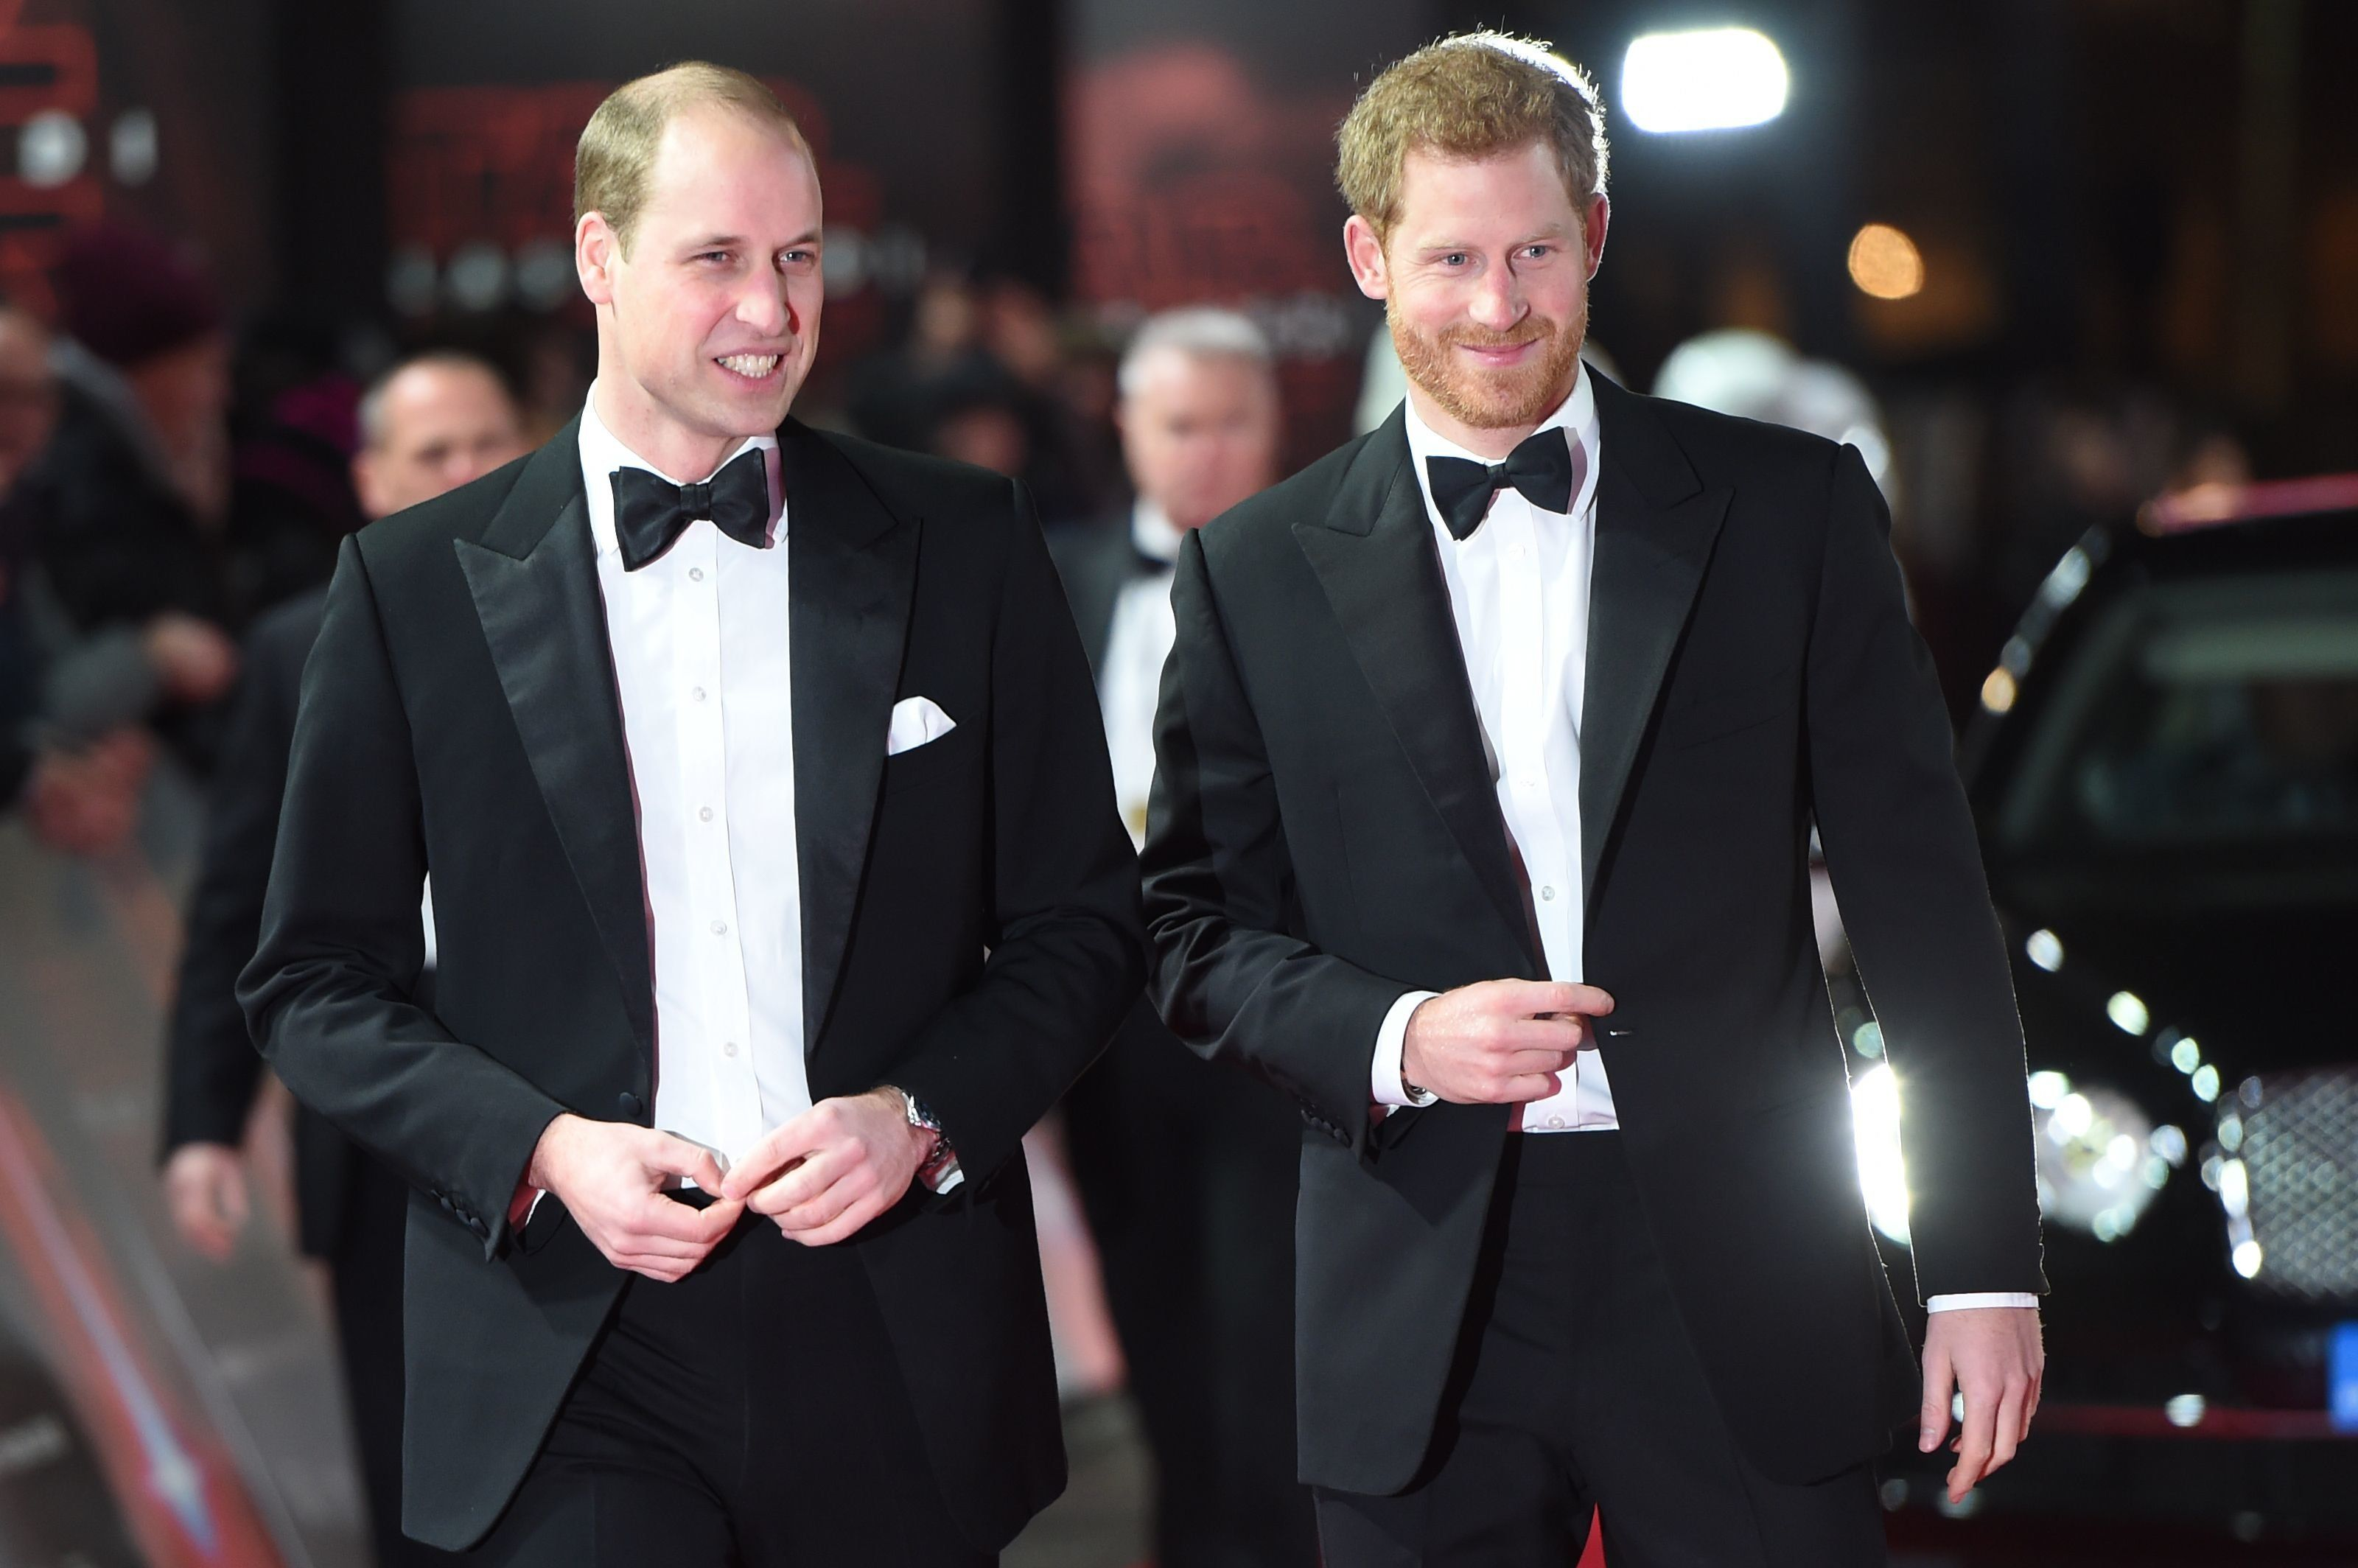 Price William and Prince Harry arrive at Royal Albert Hall on Tuesday.